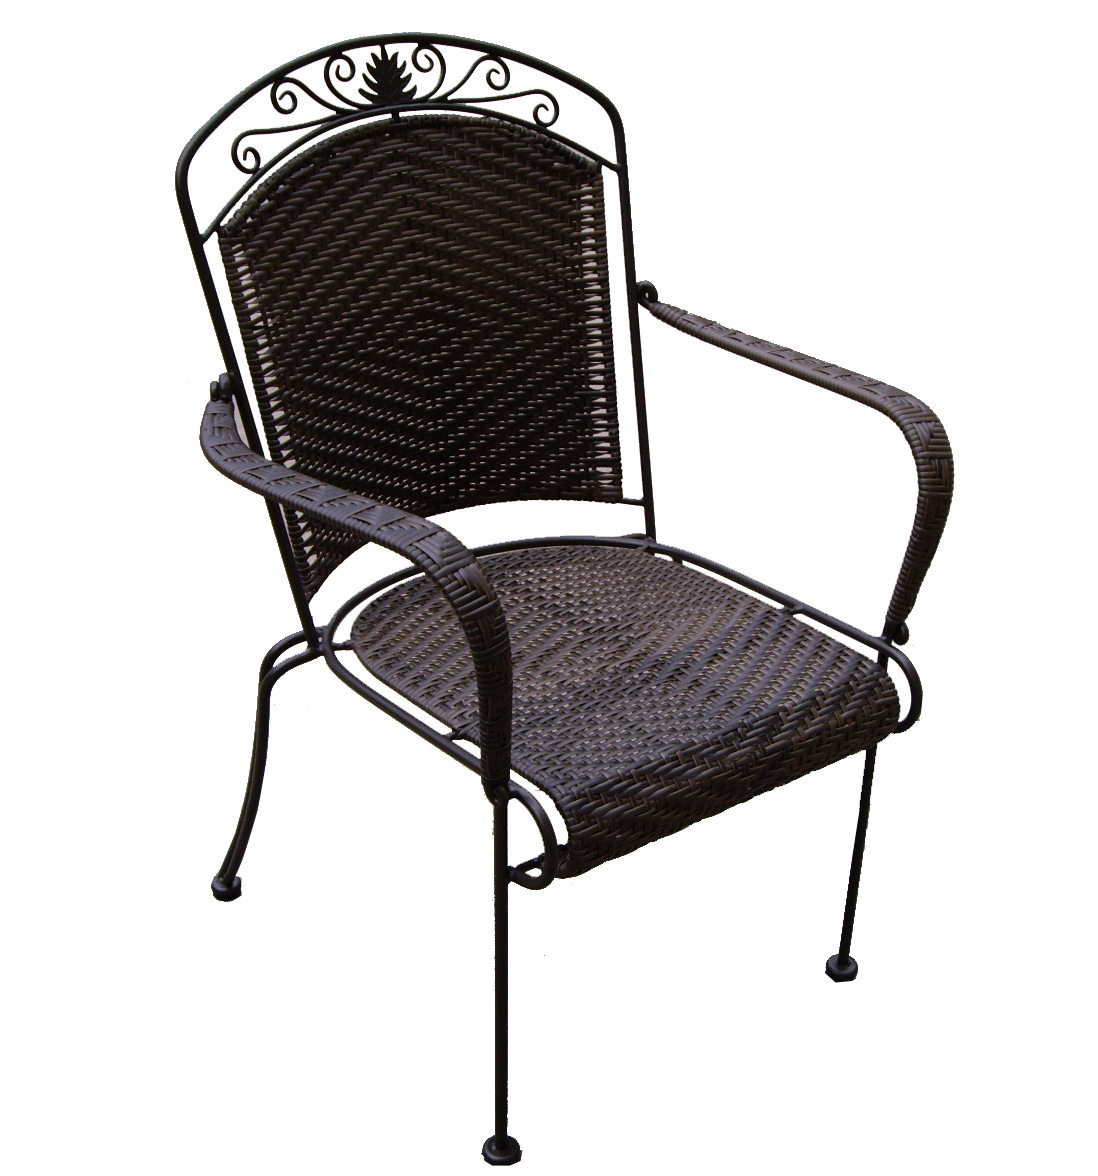 Wrought iron chairs designs furniture gallery for Wrought iron furniture